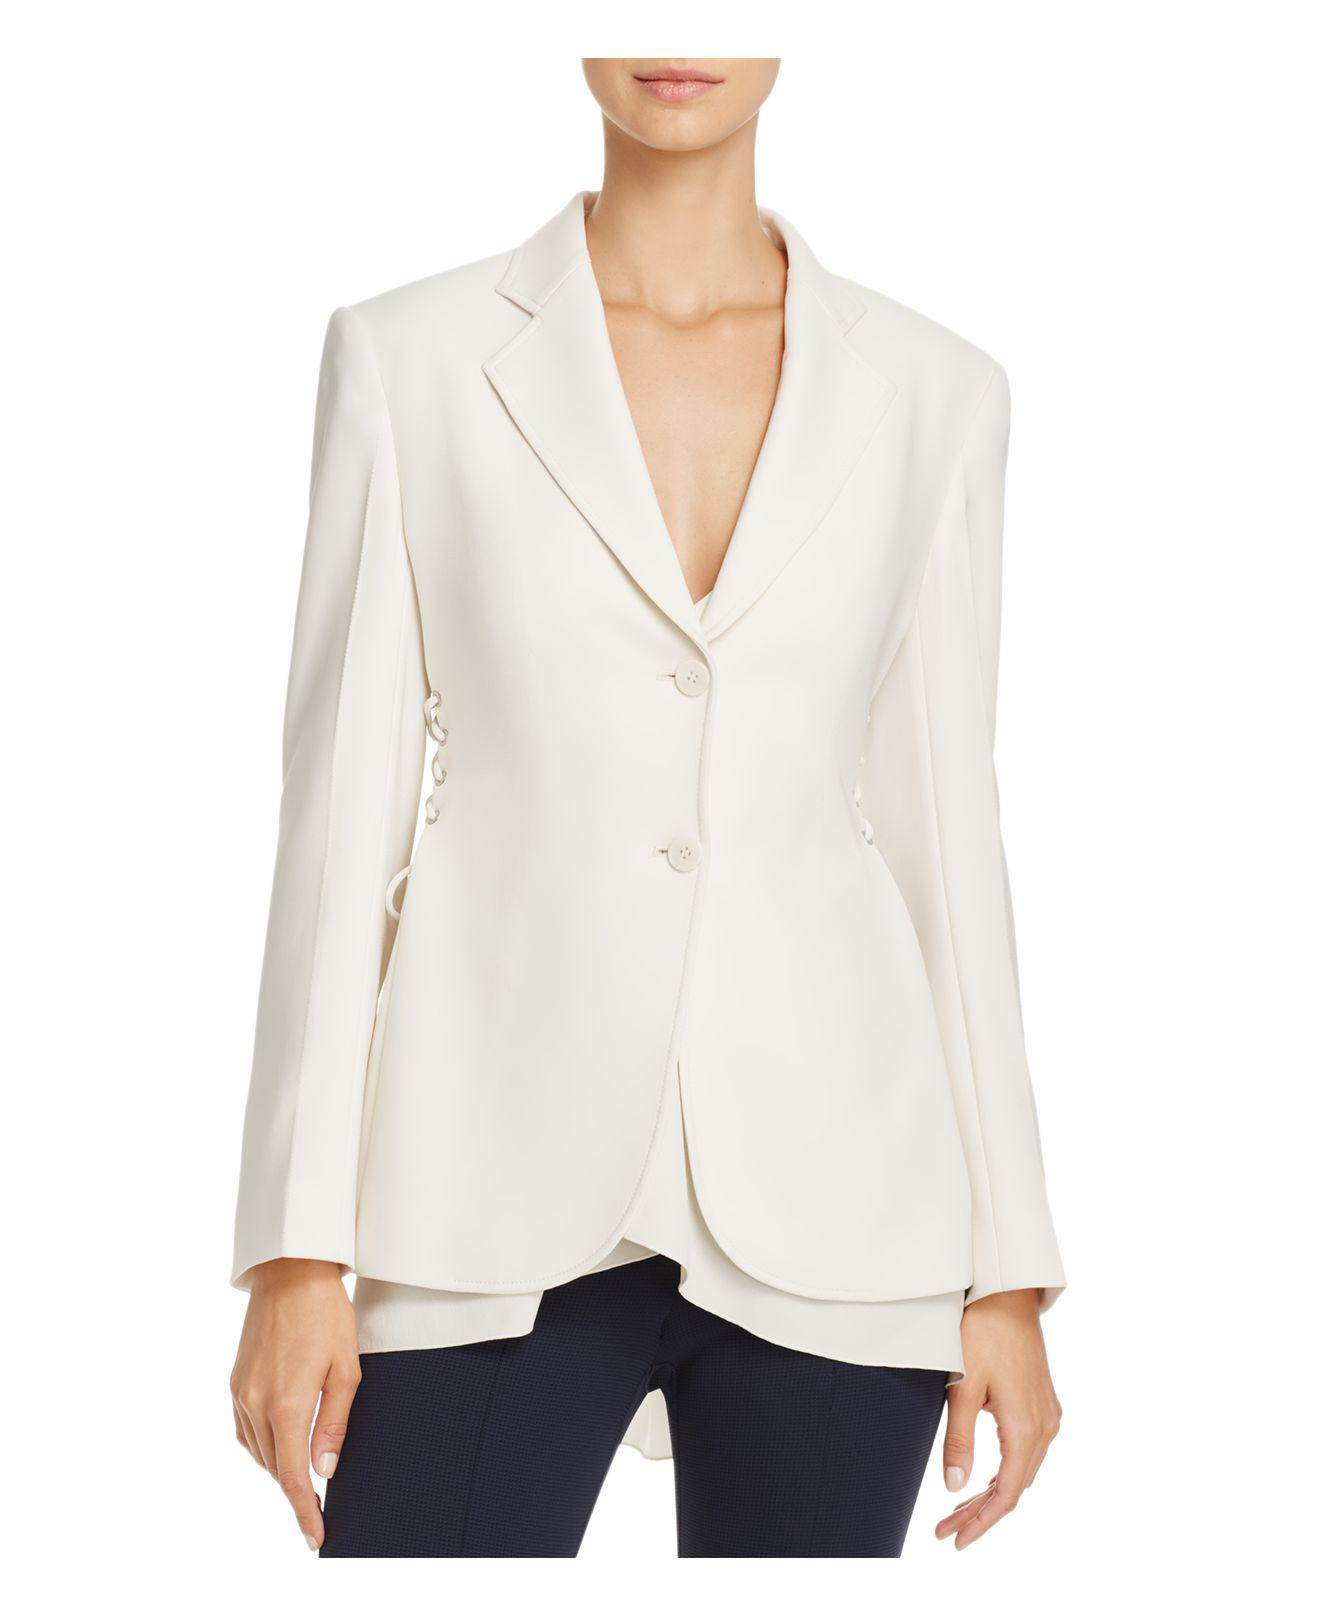 970afee95a3 Theory Admiral Lace-up Crepe Jacket in White - Lyst